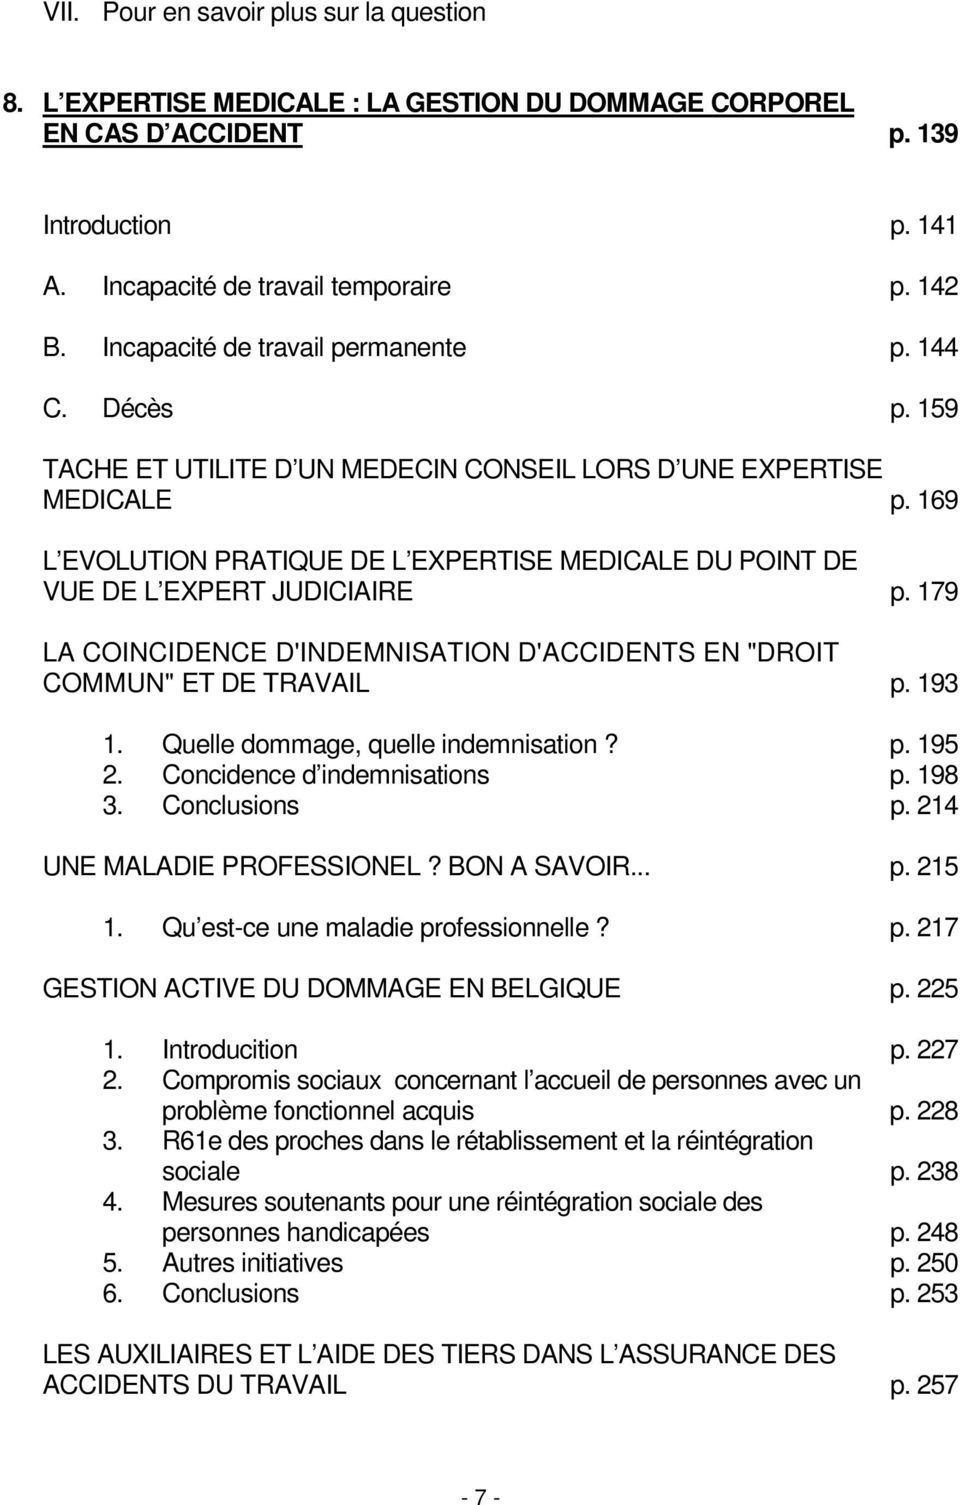 "169 L EVOLUTION PRATIQUE DE L EXPERTISE MEDICALE DU POINT DE VUE DE L EXPERT JUDICIAIRE p. 179 LA COINCIDENCE D'INDEMNISATION D'ACCIDENTS EN ""DROIT COMMUN"" ET DE TRAVAIL p. 193 1."